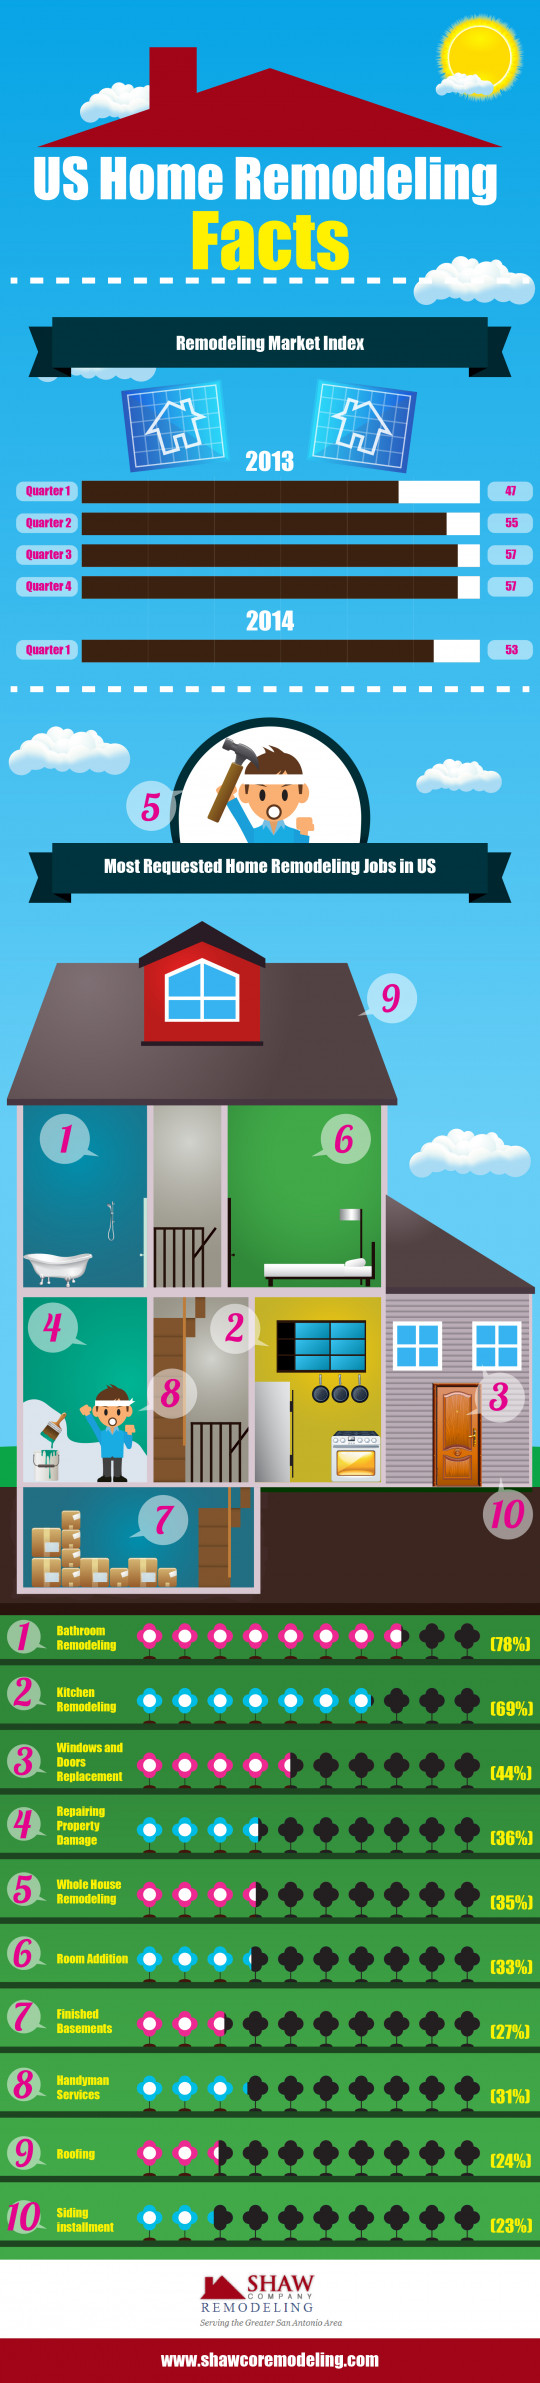 US Home Remodeling Facts